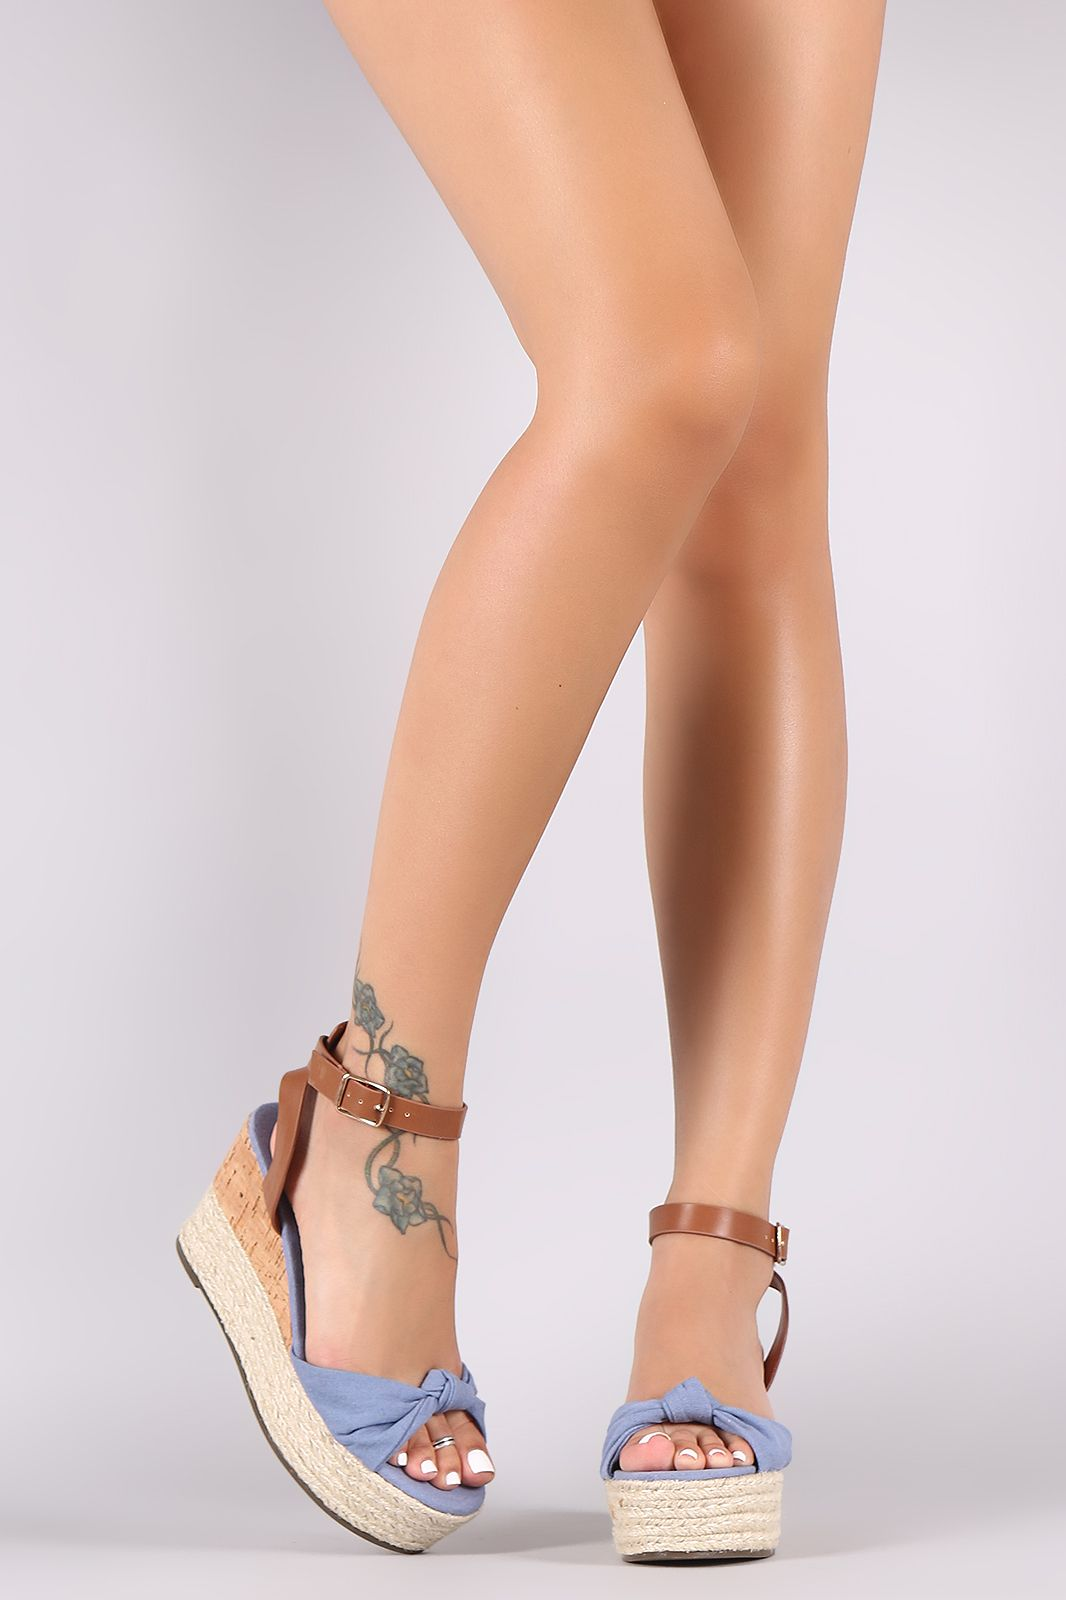 ff4f1a84608 FREE SH & Easy Returns! Shop Bamboo Knotted Bow Cork Espadrille ...